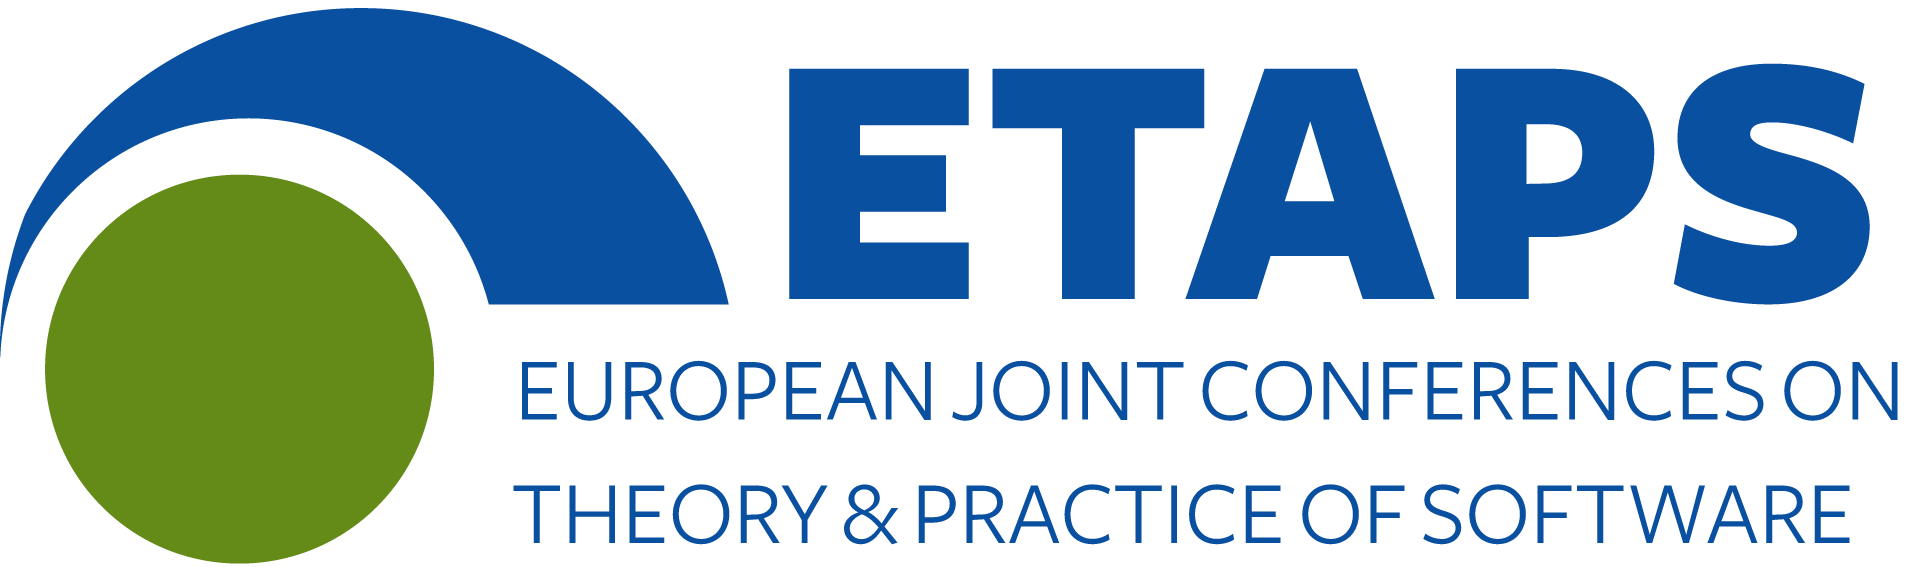 ETAPS (The European Joint Conferences on Theory and Practice of Software)